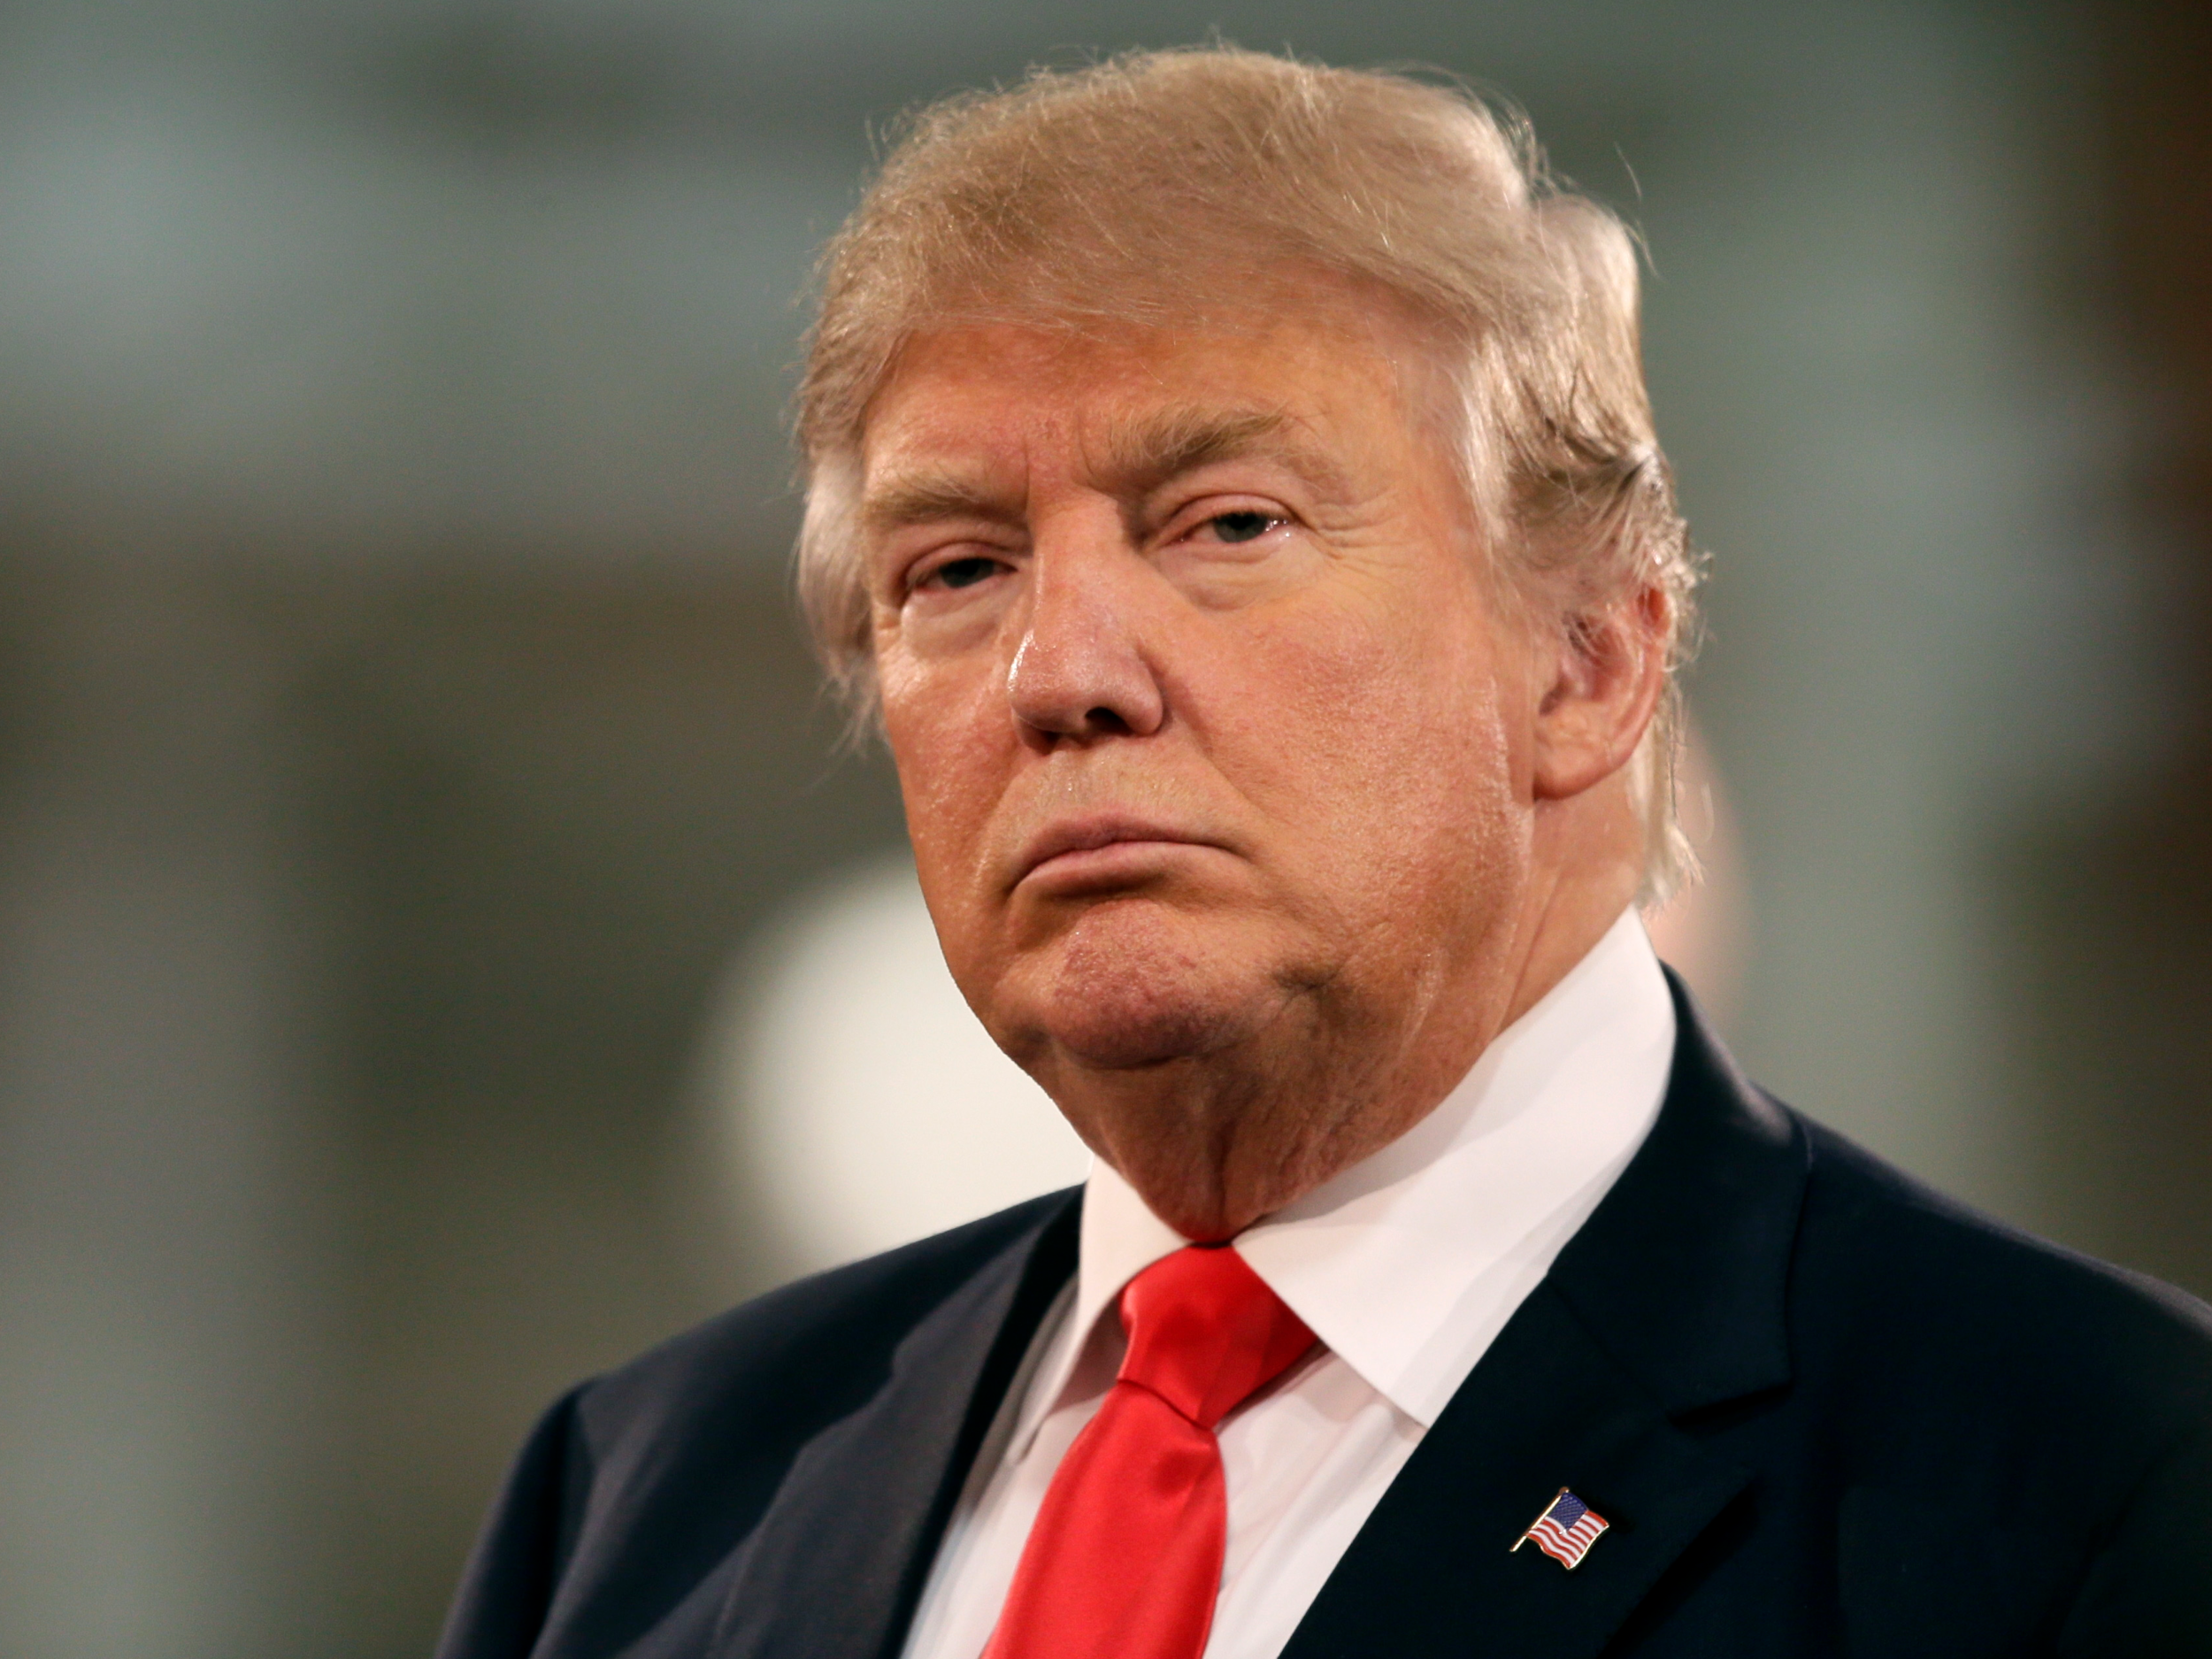 donald-trump-is-escalating-his-war-of-words-with-hillary-clinton-e1540831420354.png